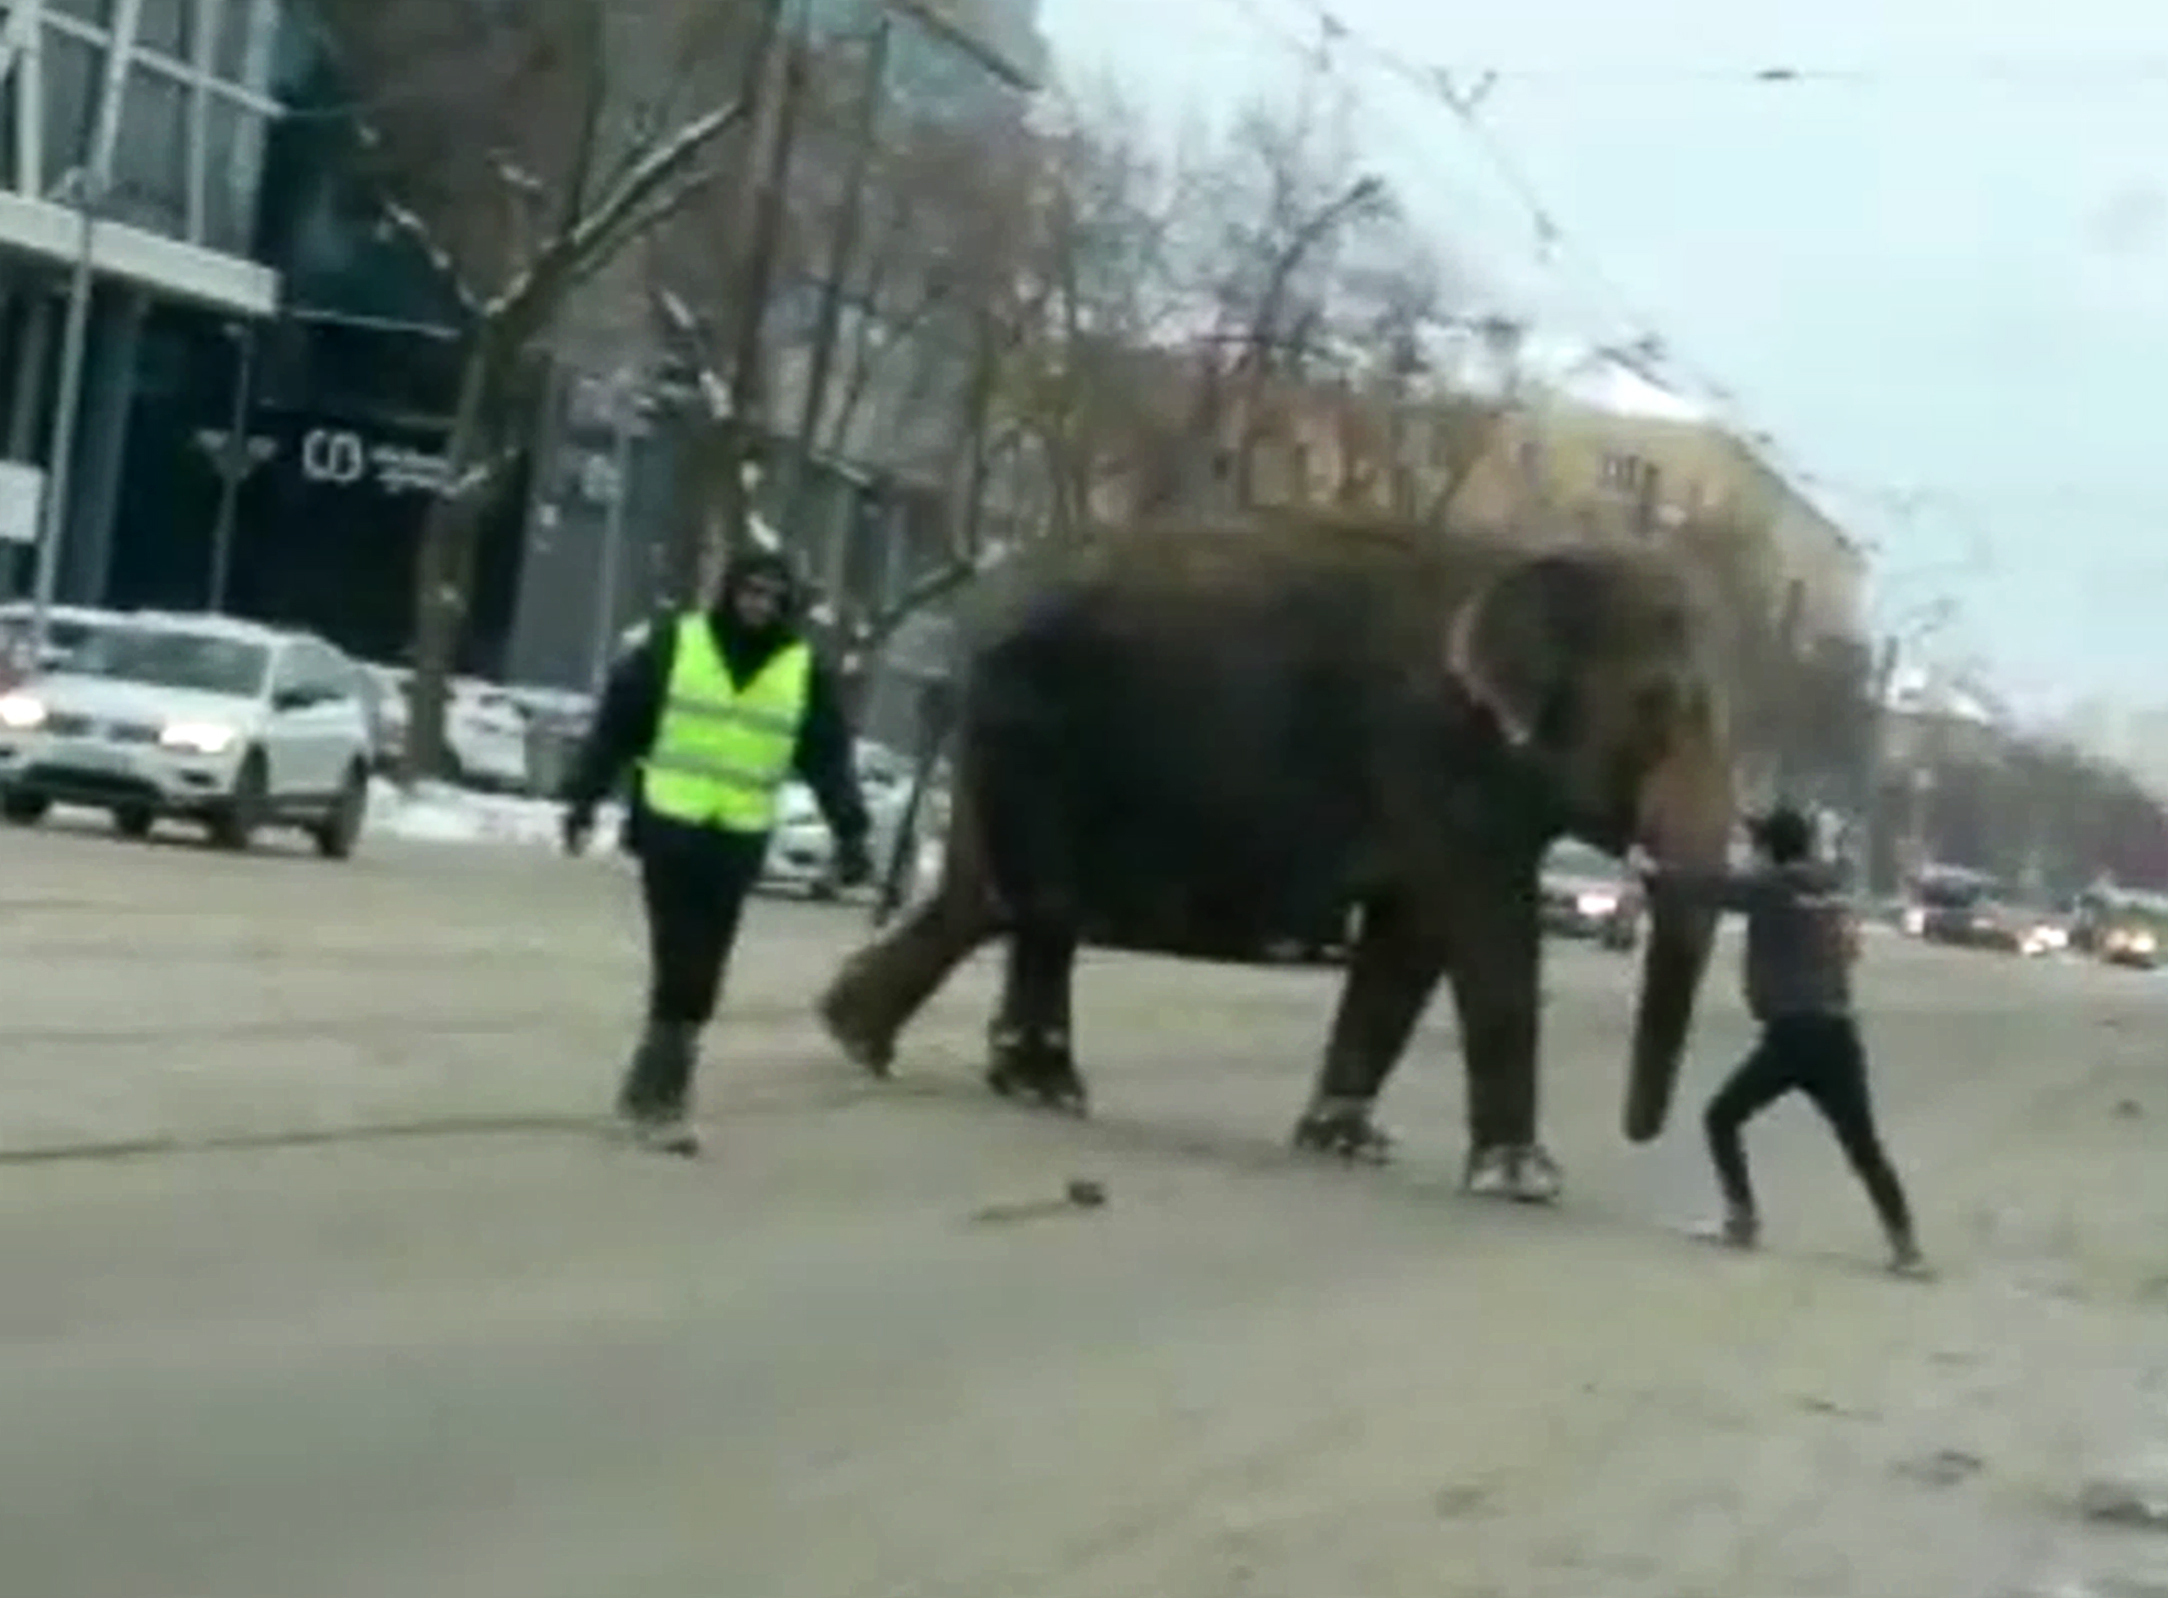 An elephant crosses the street in Yekaterinburg, Russia